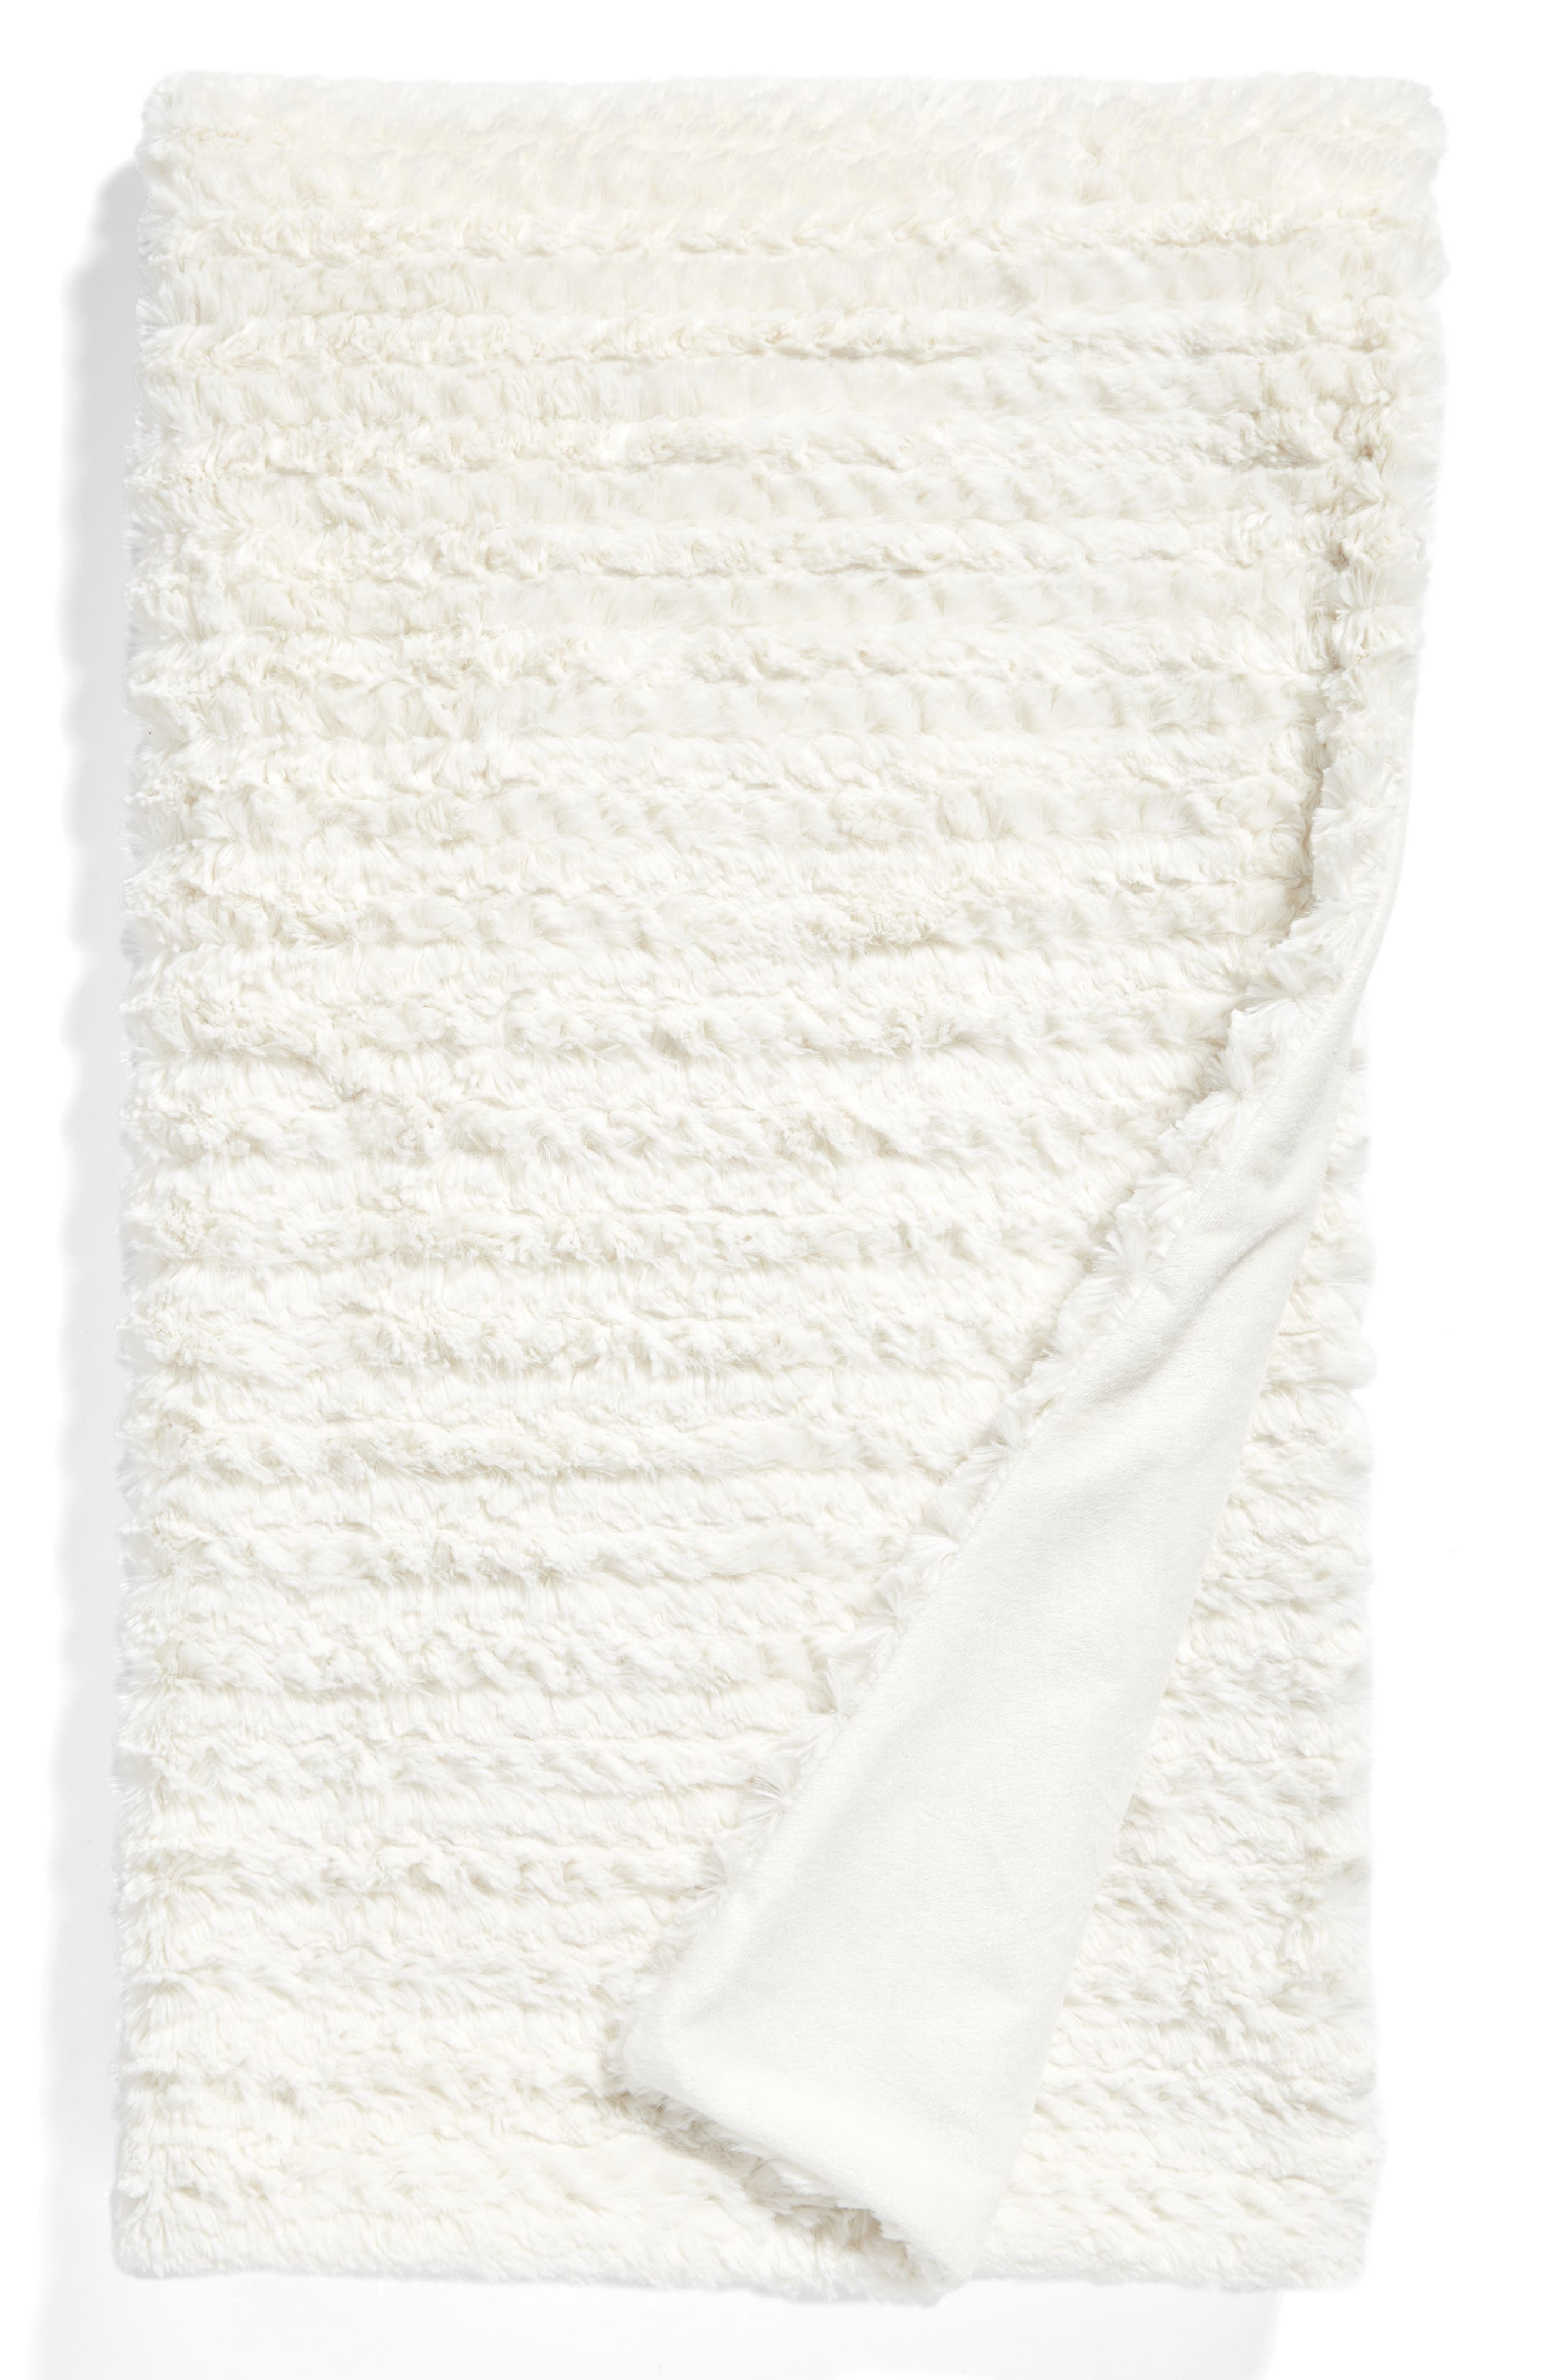 NORDSTROM AT HOME, Faux Fur Throw Blanket, Main thumbnail 1, color, IVORY